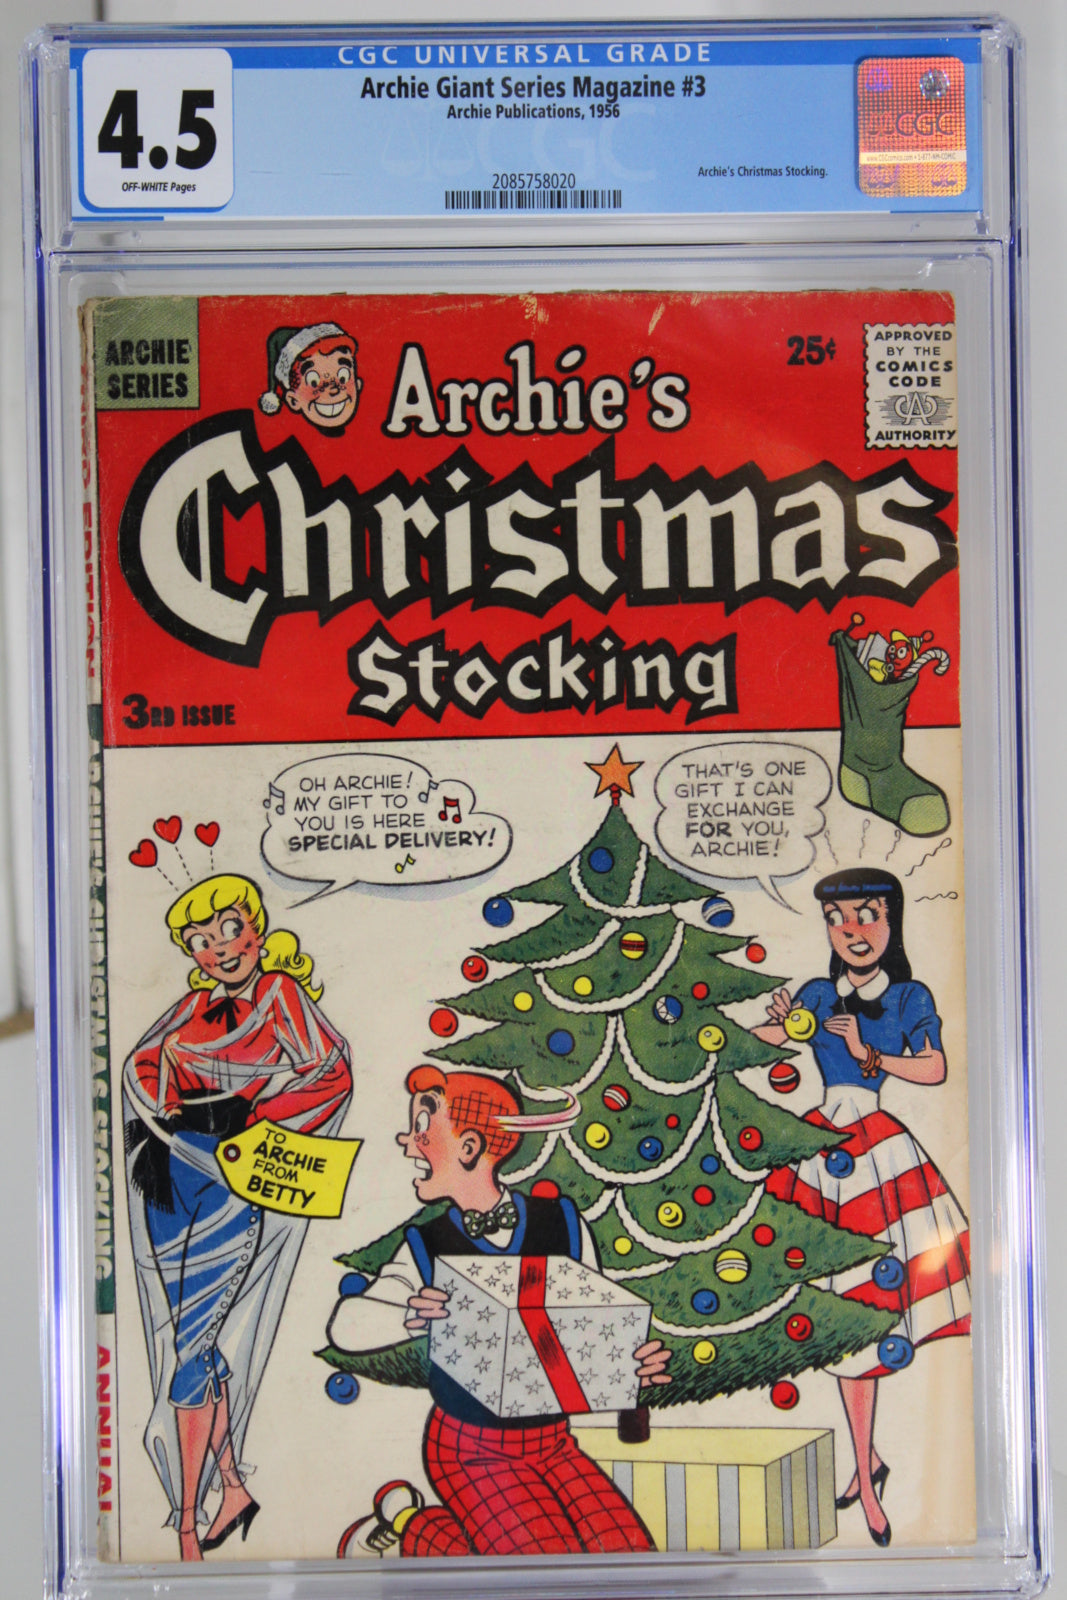 Archie Giant Series Magazine #3 CGC 4.5, Archie's Christmas Stocking